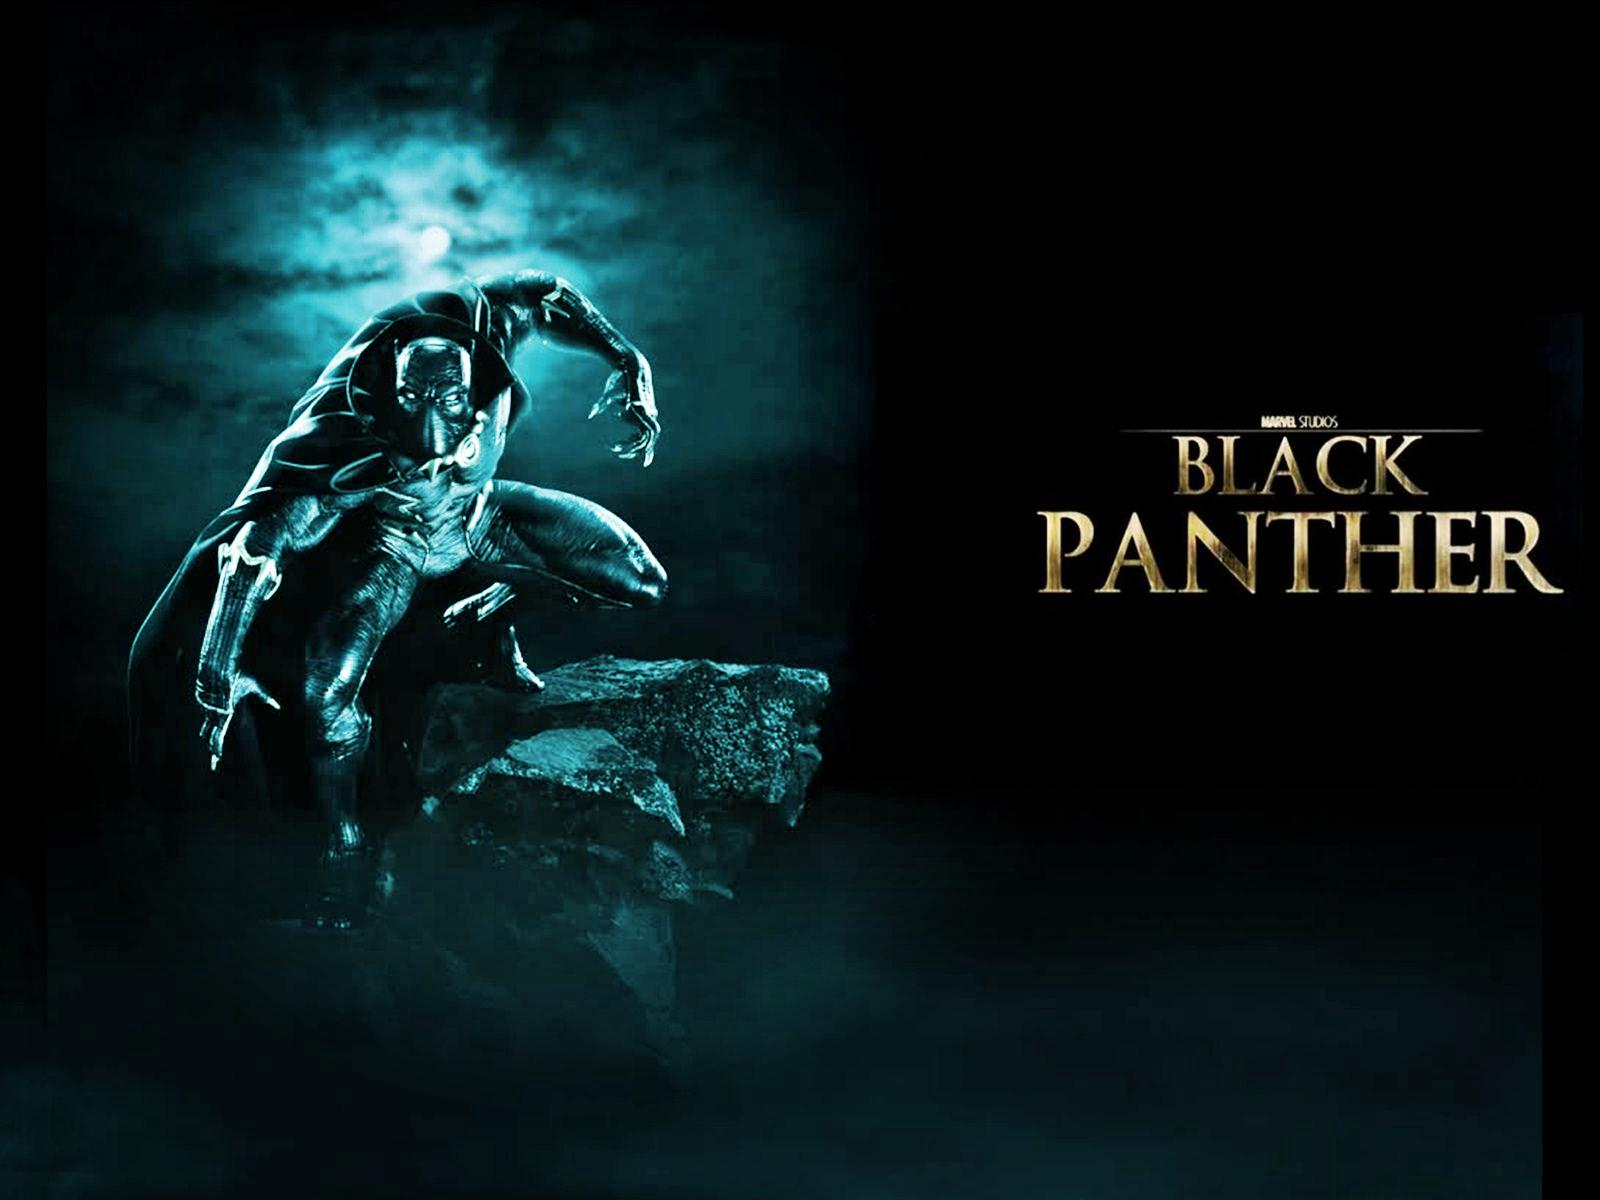 Marvel Black Panther 2017 Movie Coming HD Wallpaper Search more high 1600x1200